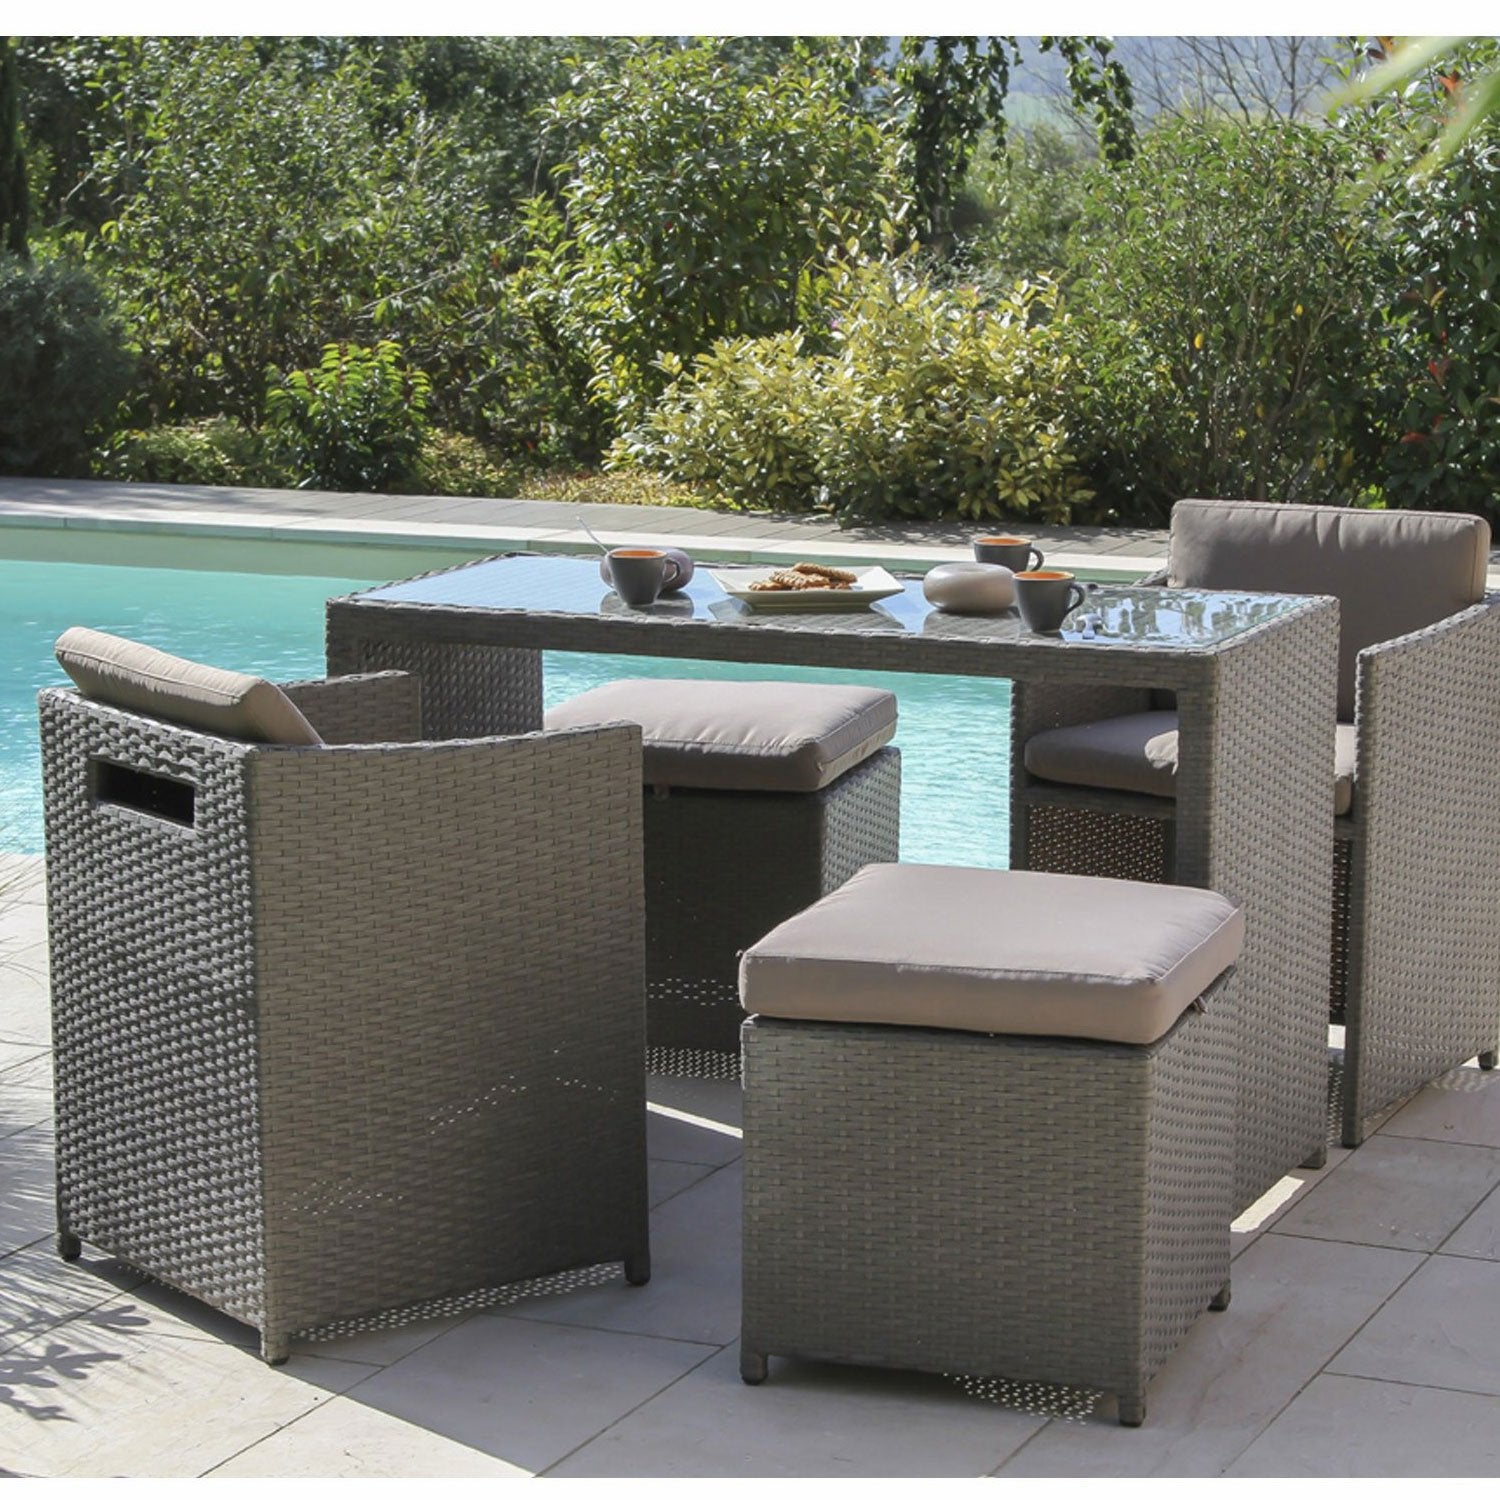 Salon de jardin foggia r sine tress e gris 1 table 2 fauteuils 2 tabourets - Table de jardin resine tressee ...